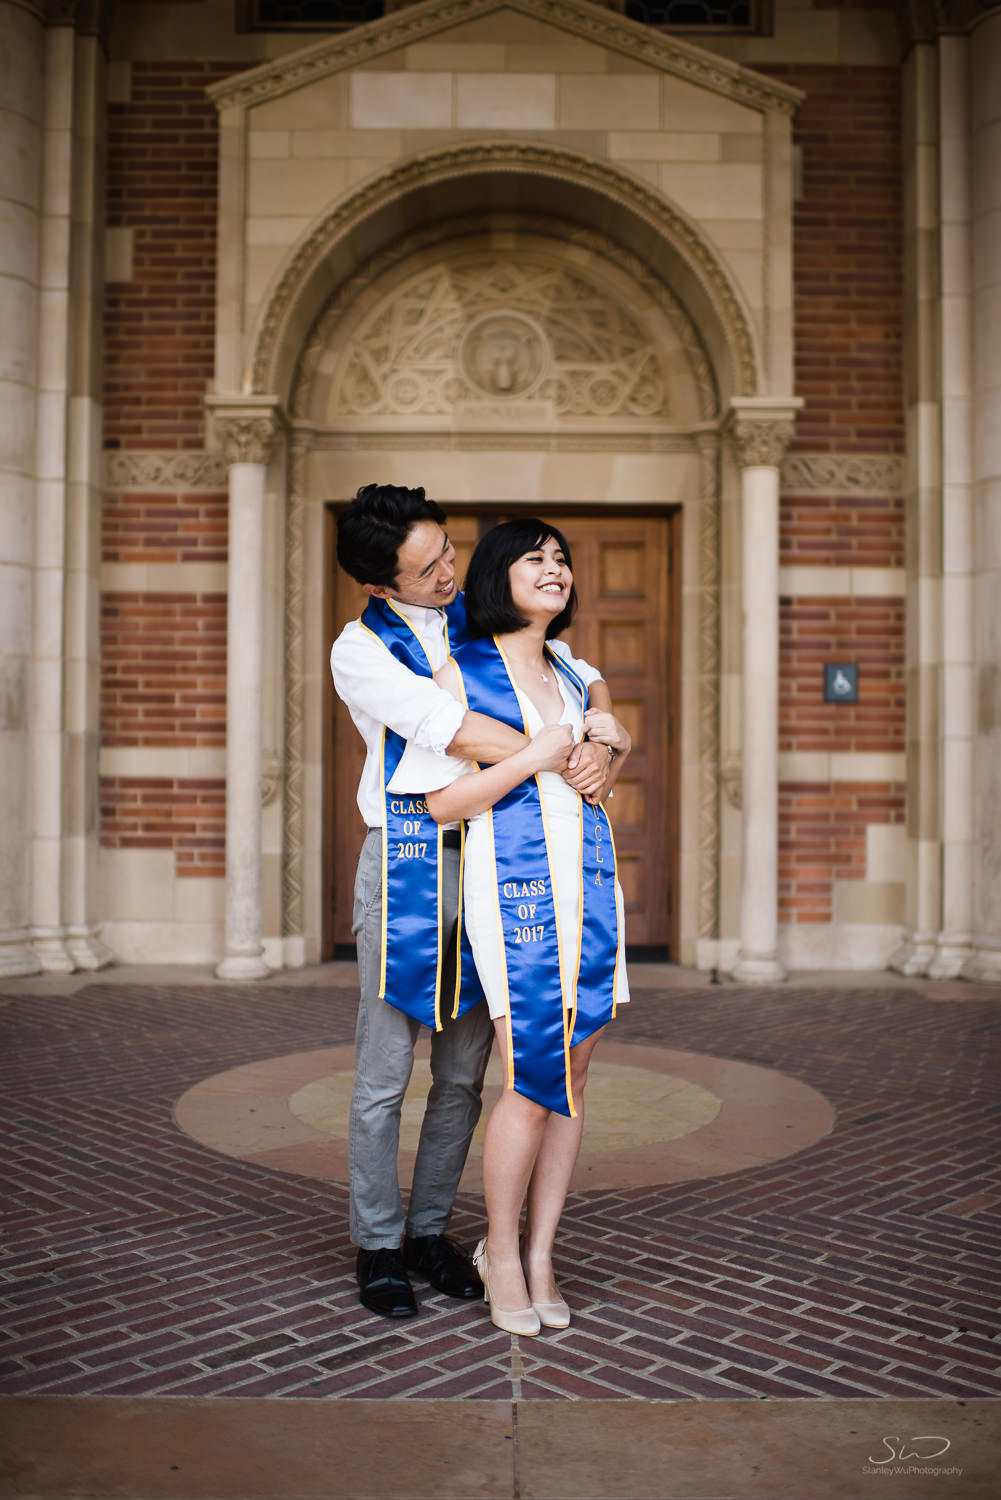 Copy of Copy of couple hugging under arches in royce hall  | Stanley Wu Photography | Los Angeles | Graduation Portraits | UCLA, USC, LMU, Pepperdine, CSULA, CSUN, CSULB, UCI, UCSD